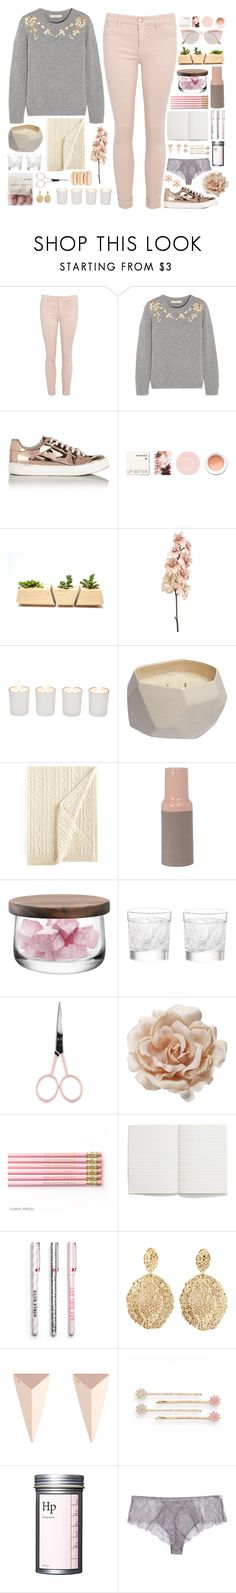 """""""e l i s e"""" by anabelle-grace ❤ liked on Polyvore featuring Vanessa Bruno, Miss Selfridge, Korres, Witchery, Rebecca Taylor, Ralph Lauren, Present Time, LSA International, Lalique and Anastasia Beverly Hills"""